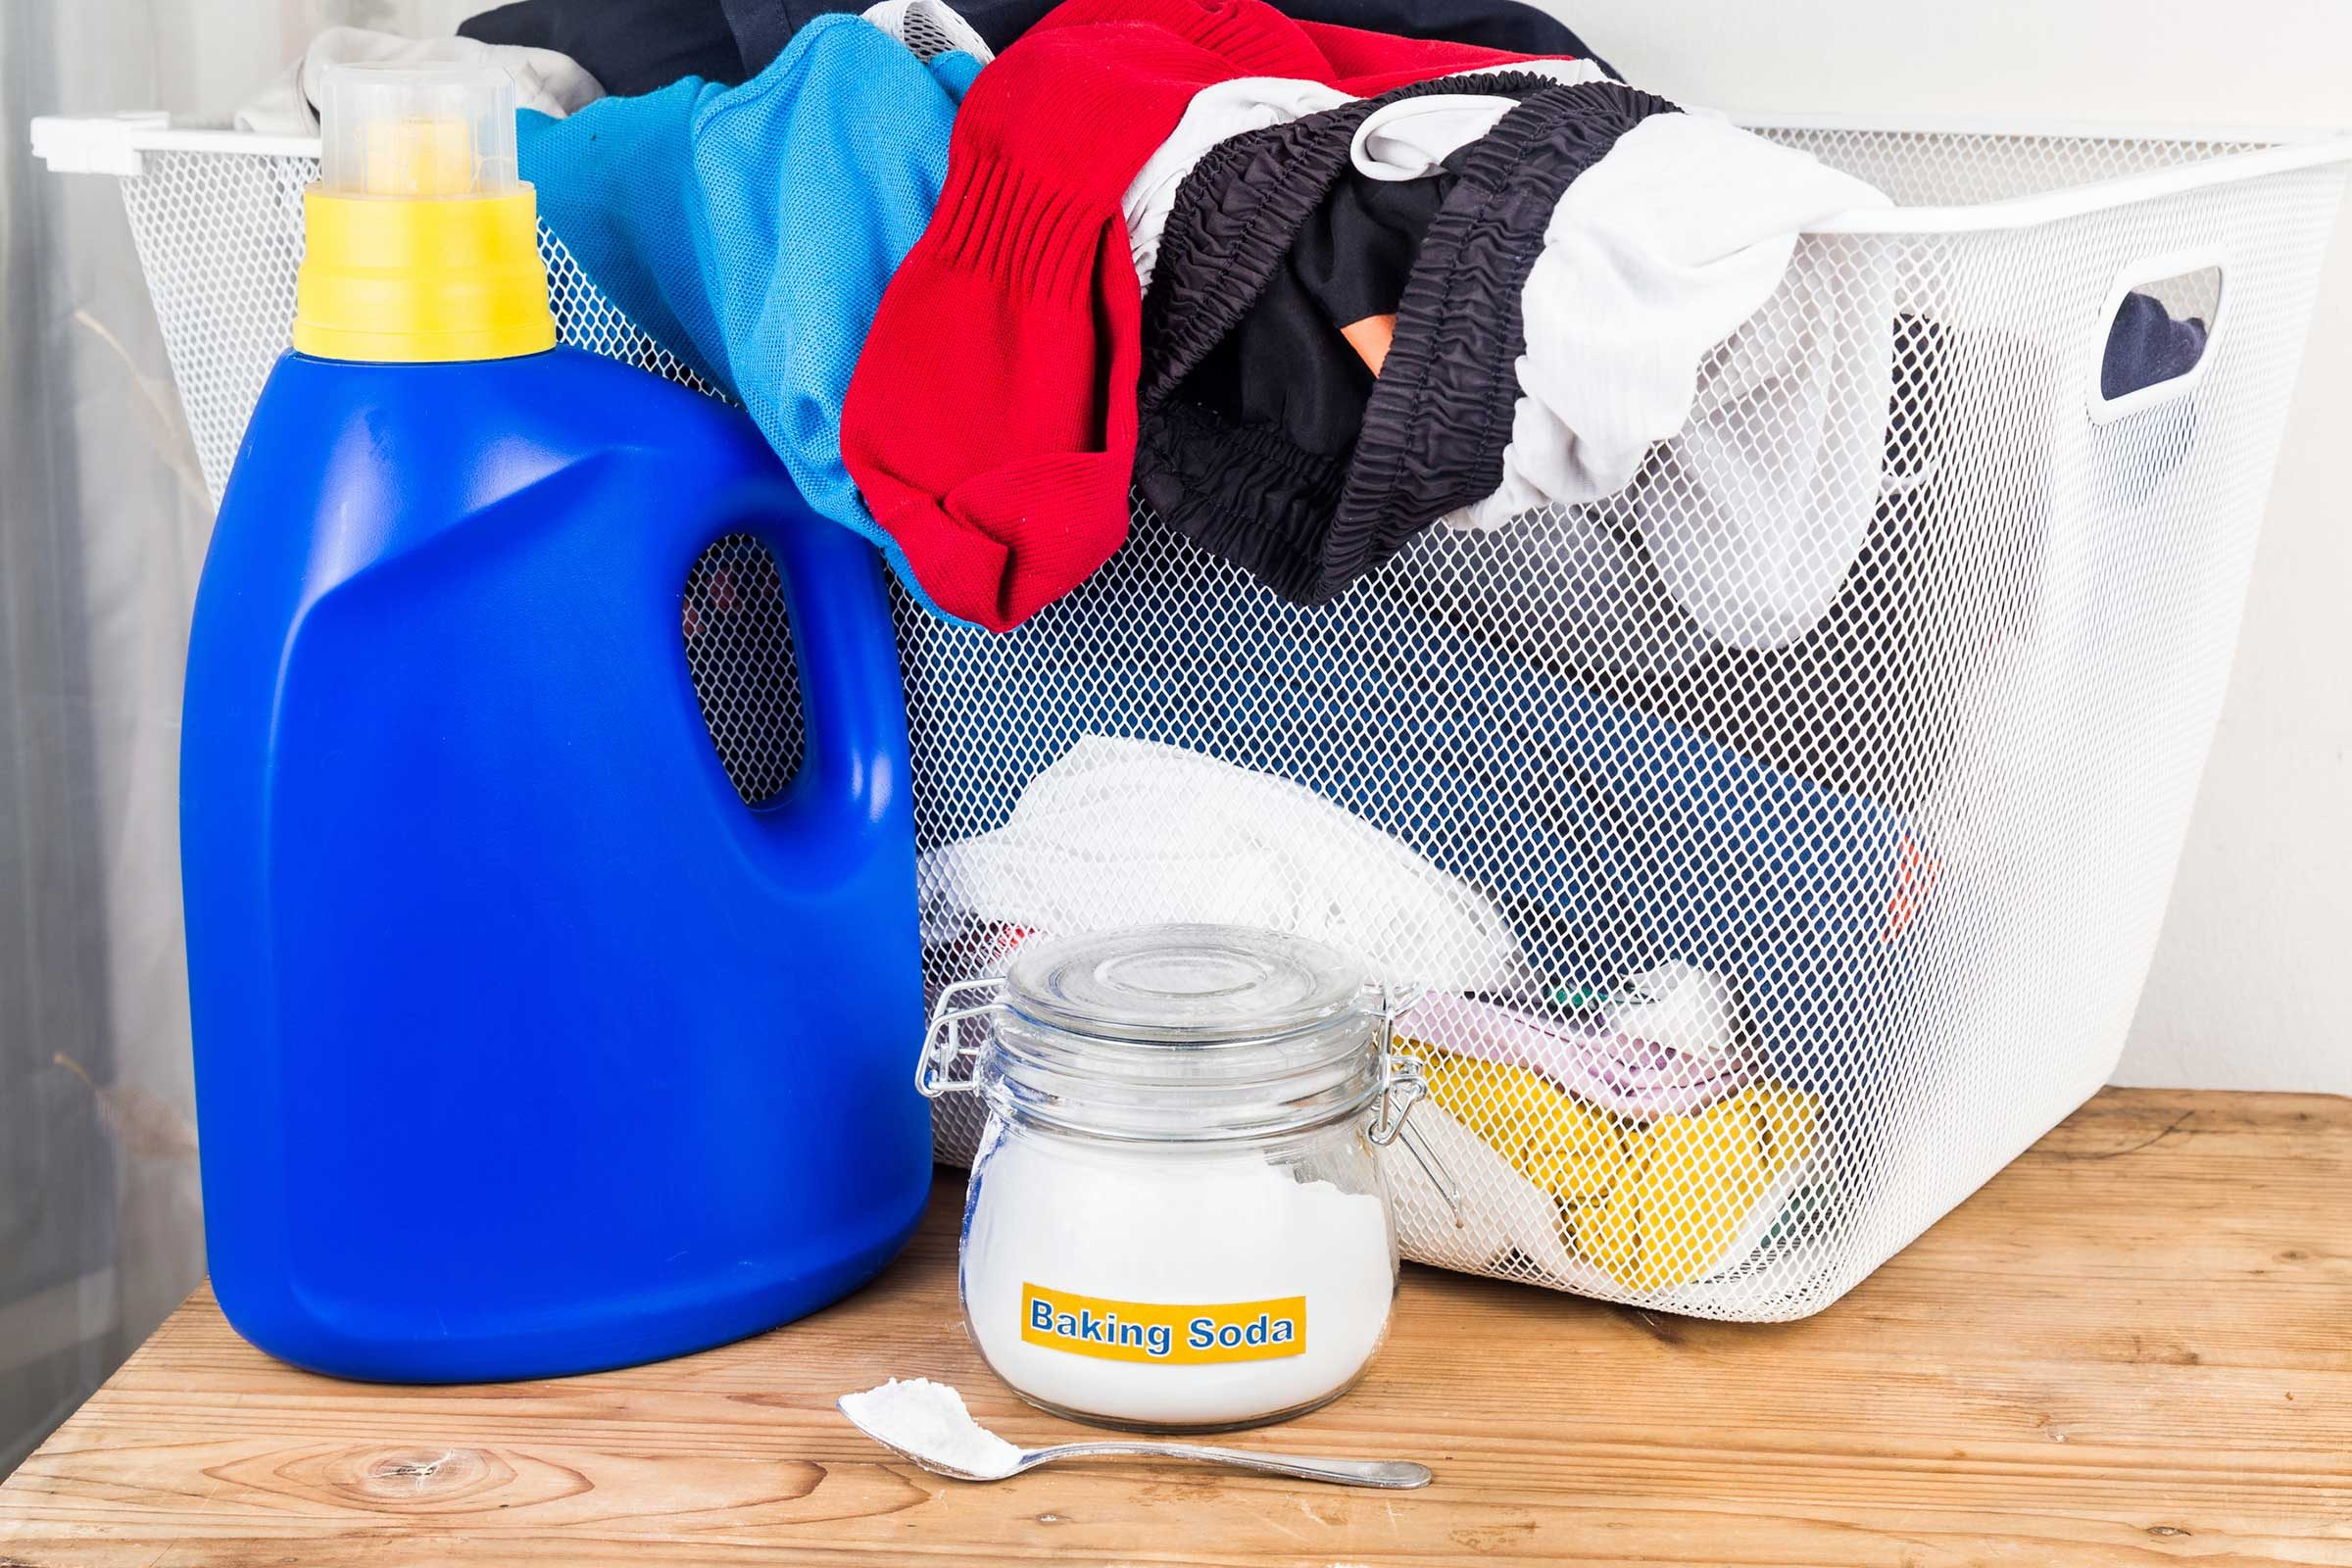 5 best baking soda and vinegar cleaning solutions reader s digest 4 boost laundry detergent